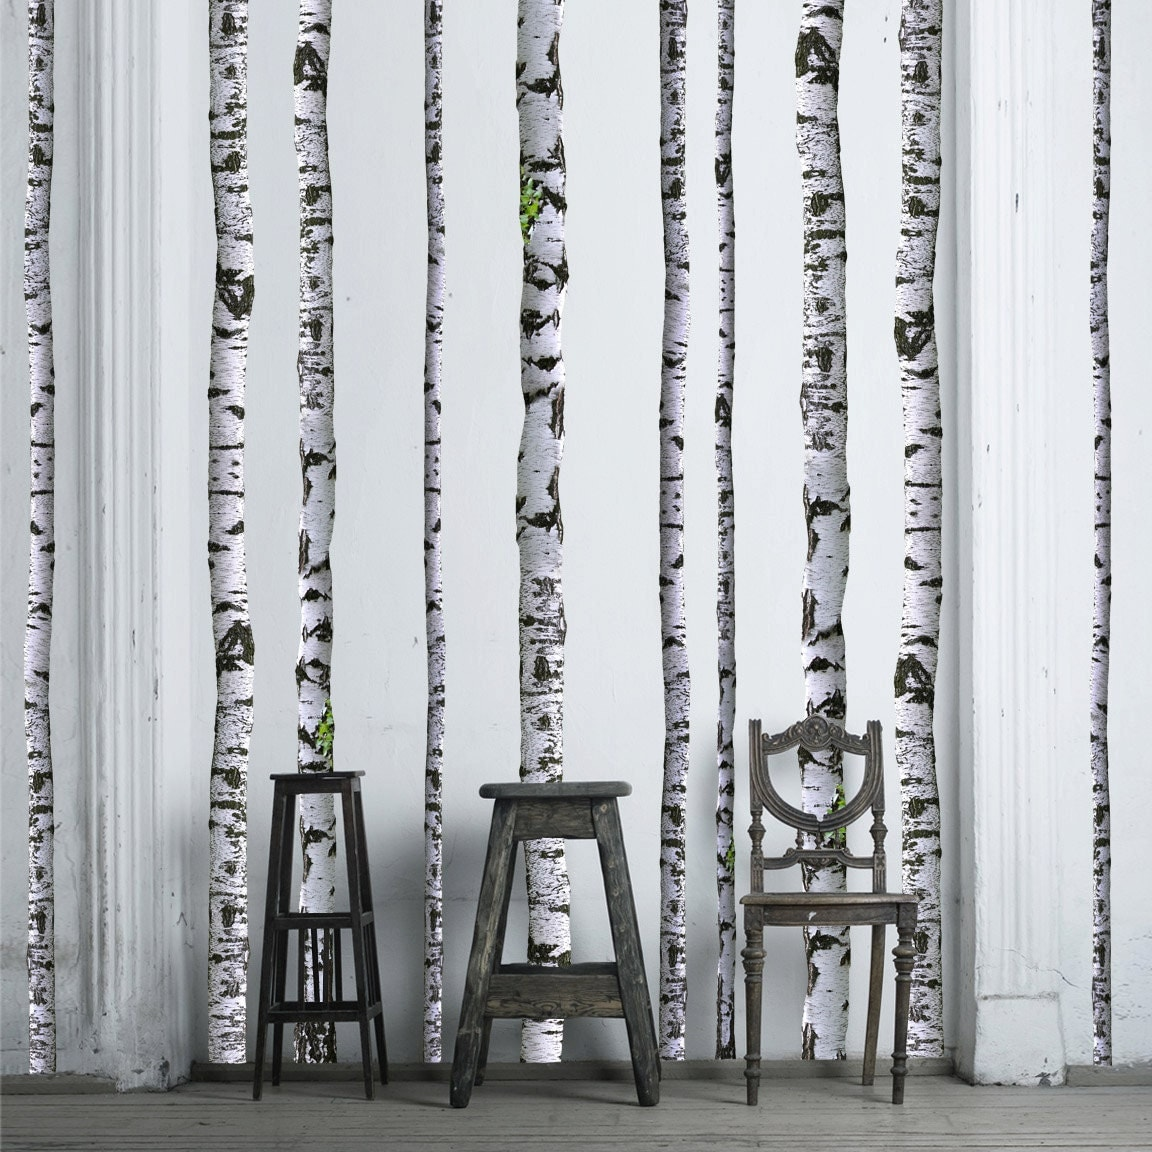 Birch tree wall decals 9 ft tall quantity of 5 for Birch trees wall mural